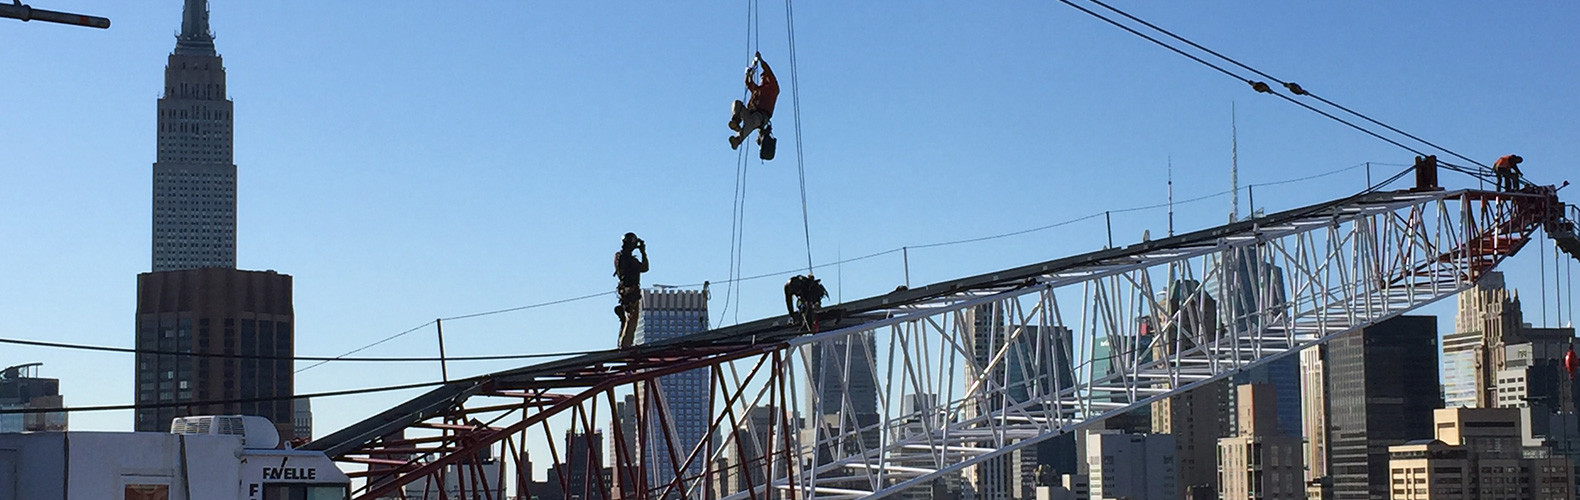 Ironworkers greasing topping lift